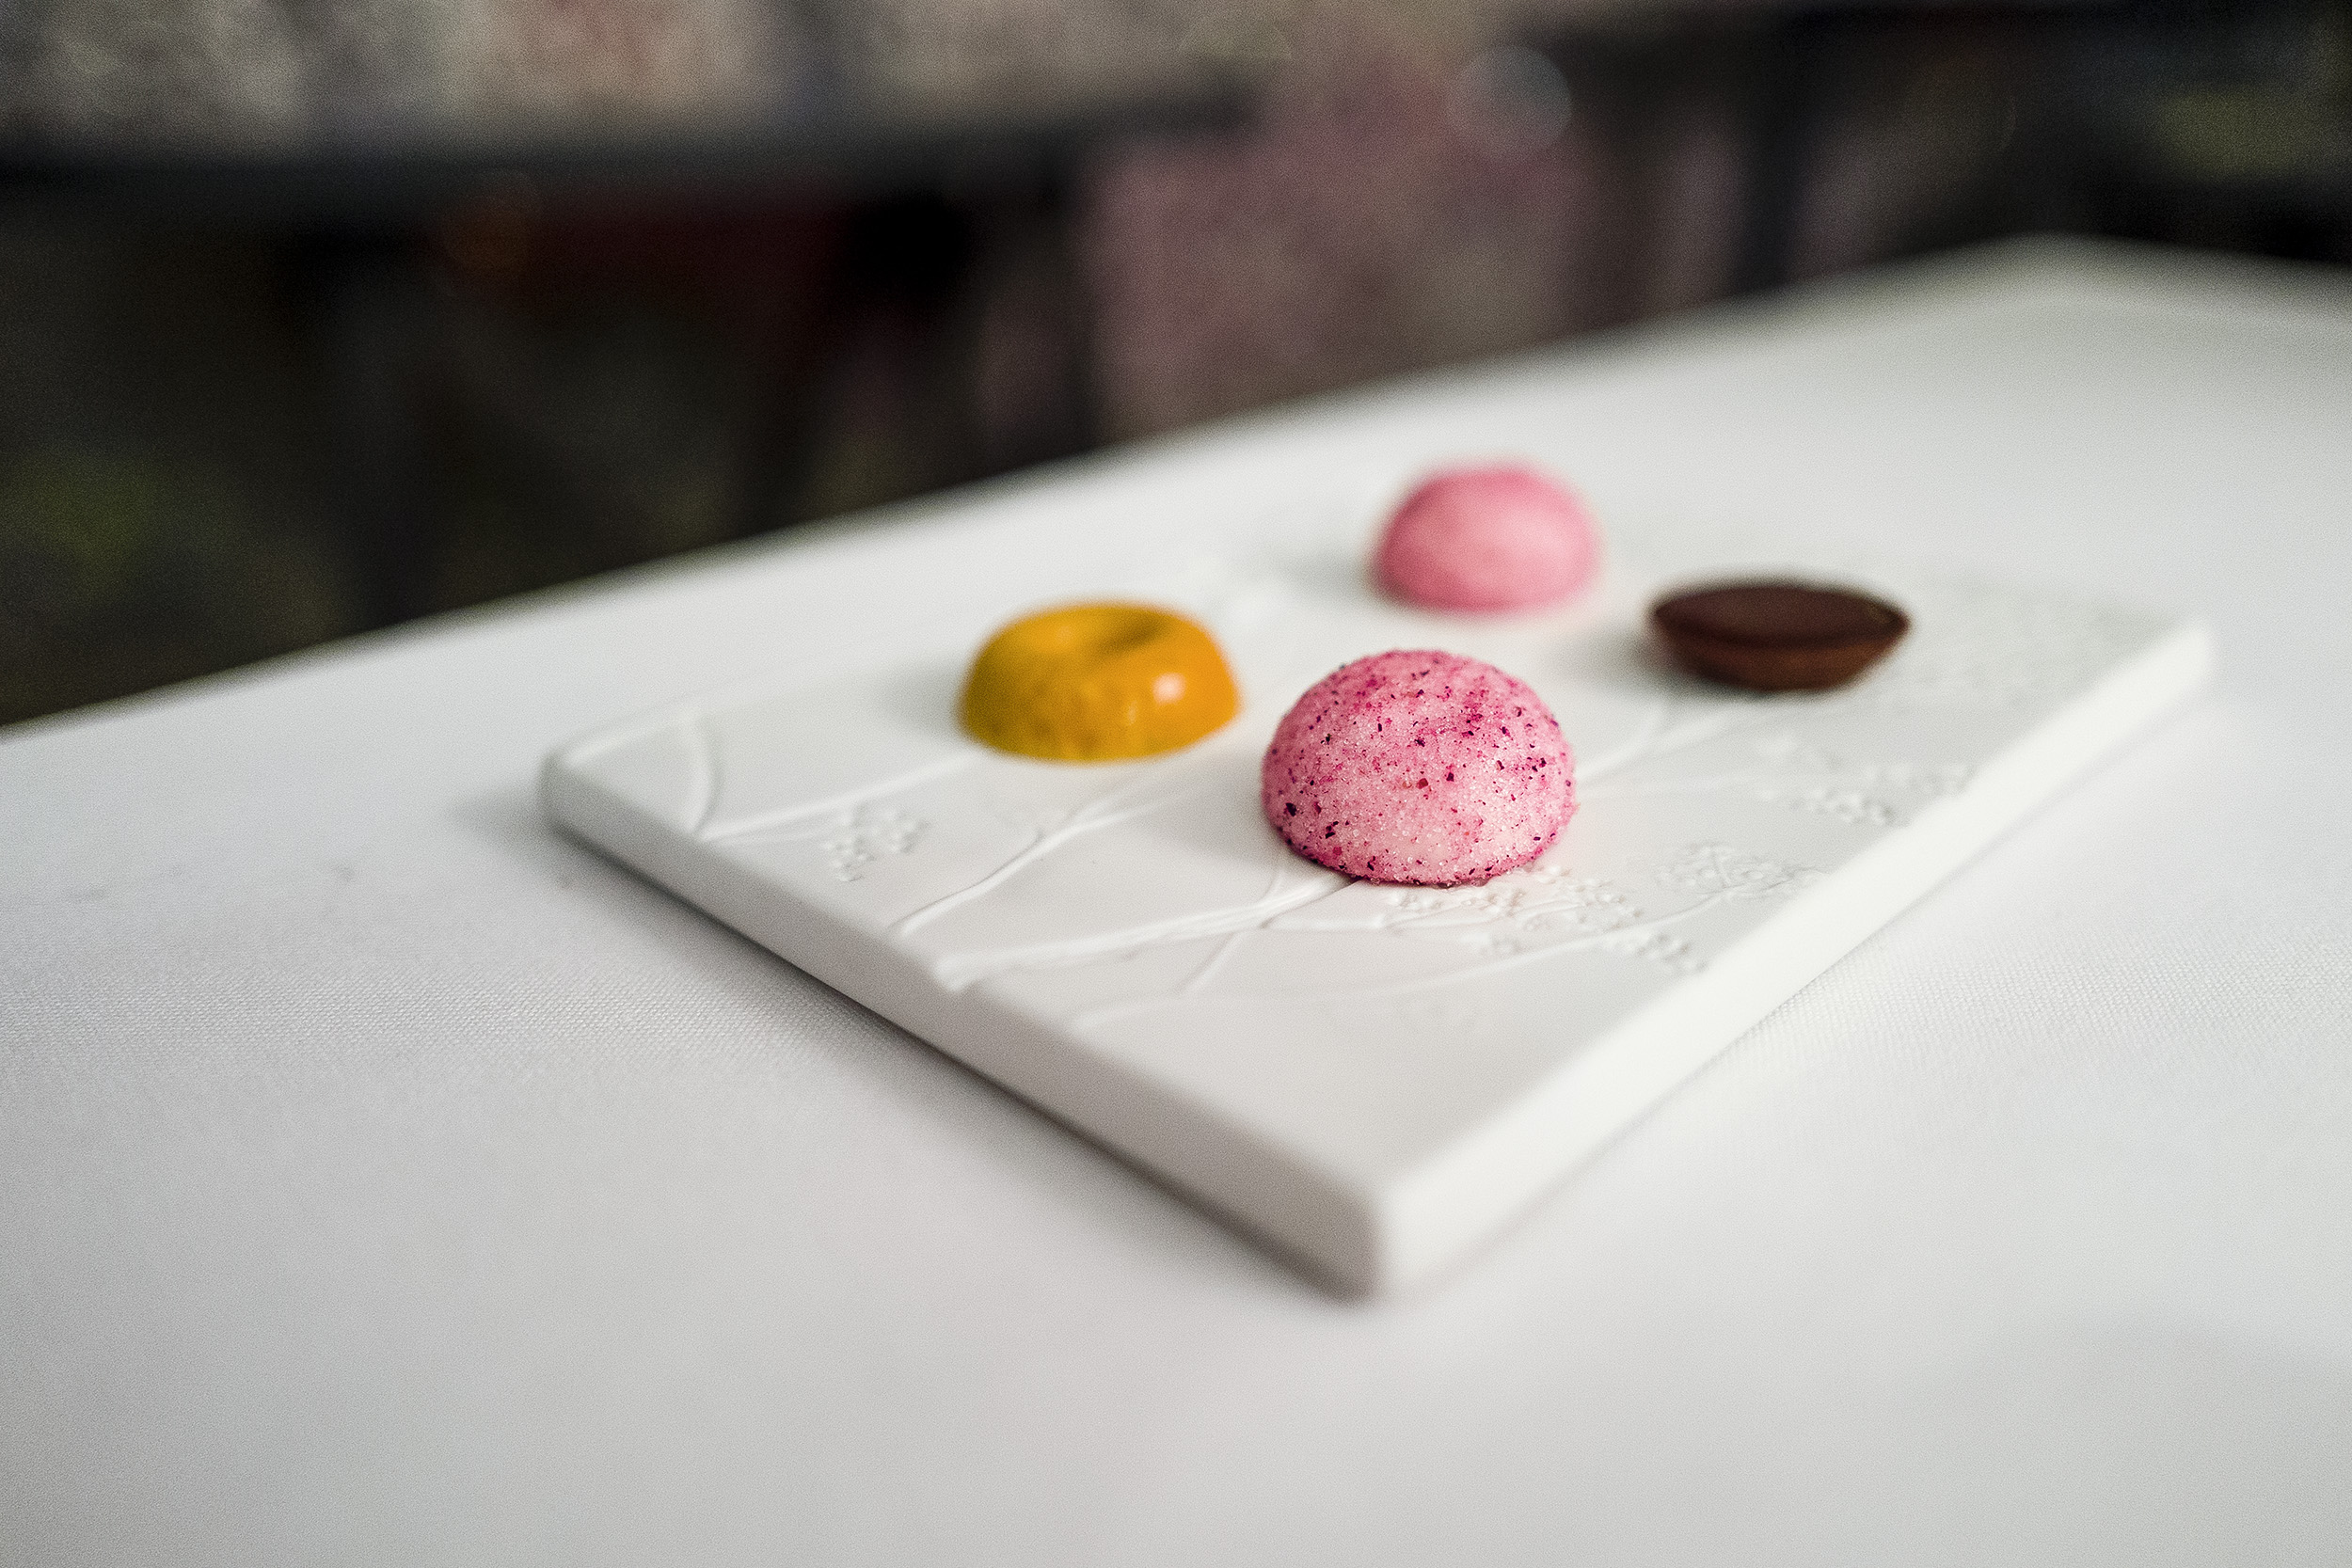 Hibiscus, Raspberry, Lychee Marshmallow. Chocolate and Caramel Tart. Honeycomb.